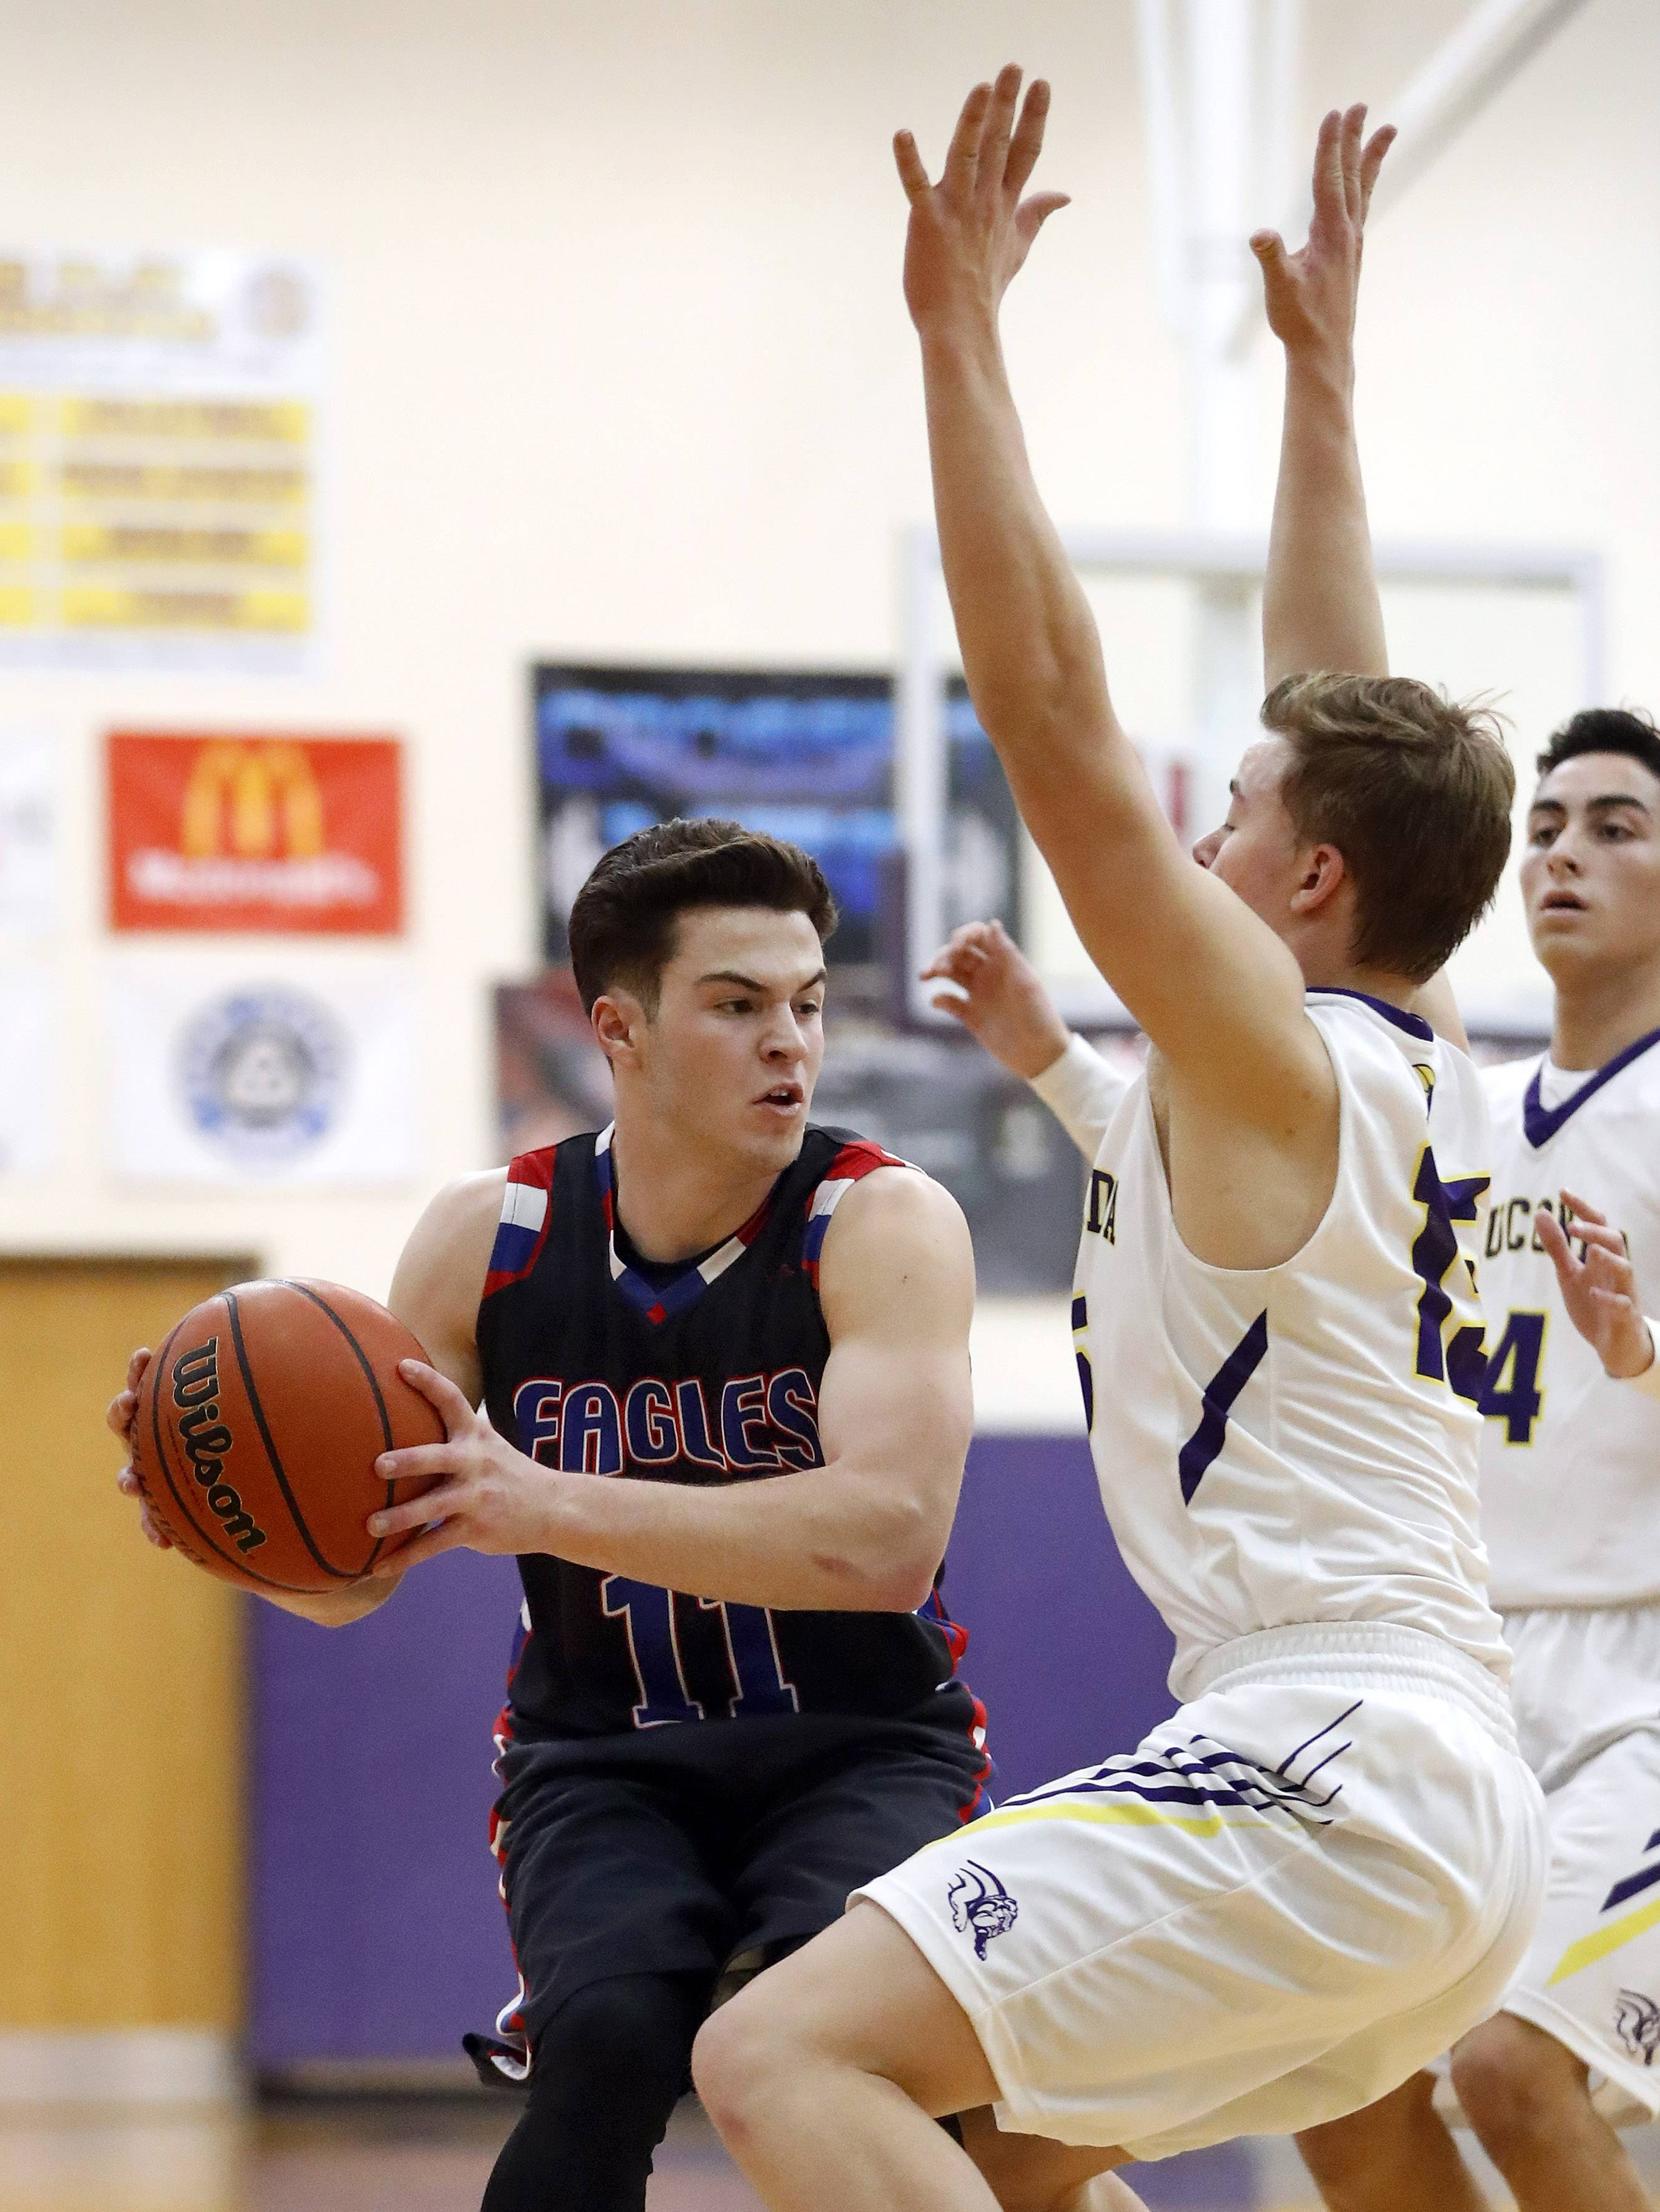 Lakes' Michael Behrendt, left, gets trapped by Wauconda's Matthew Nolan on Tuesday night in Wauconda.